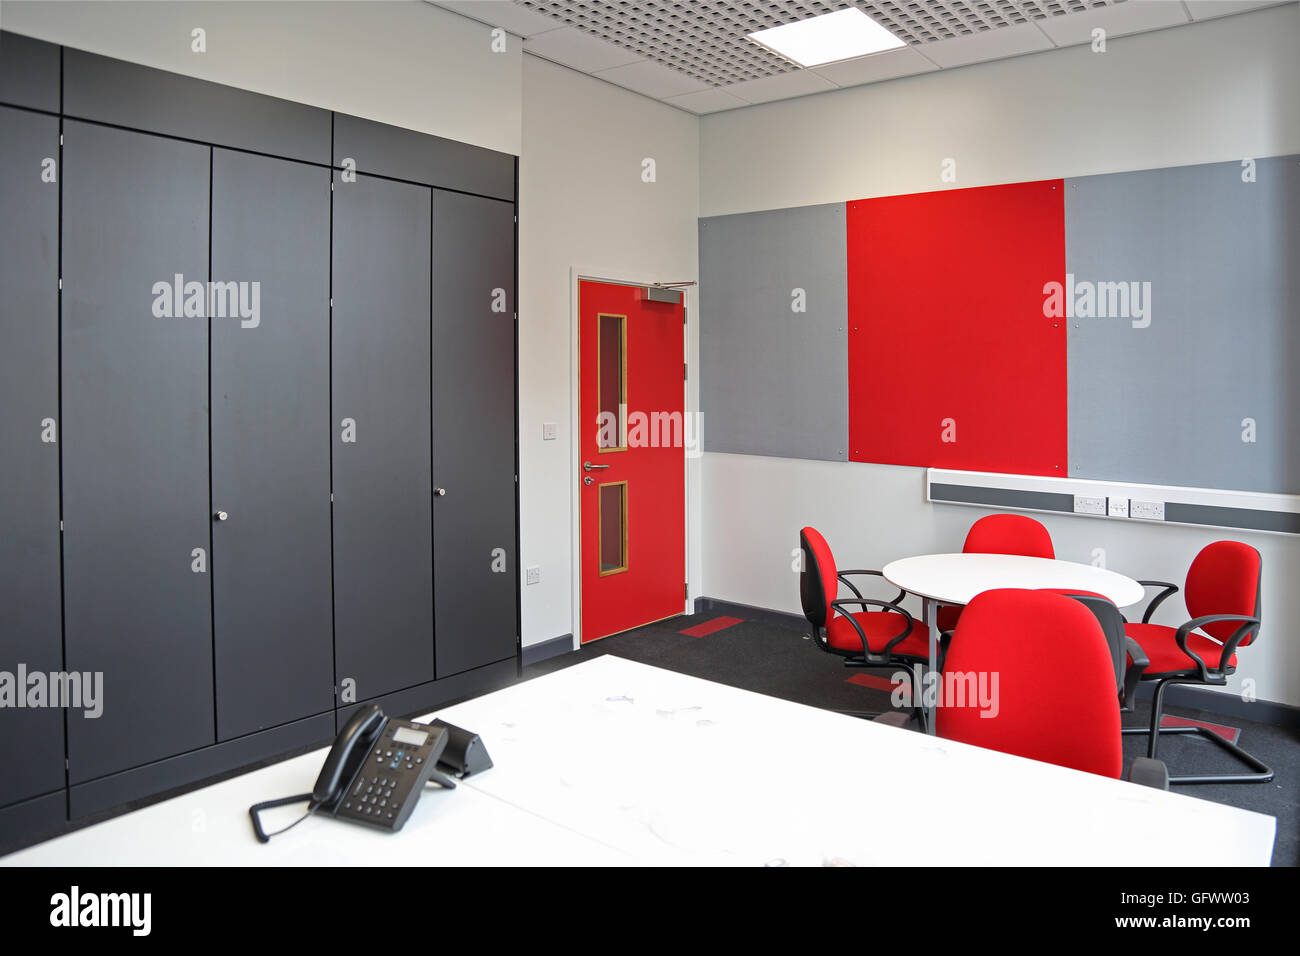 Smart new office in a new London Factory. Shows desk, meeting table and starage cupboards in distinctive red and - Stock Image